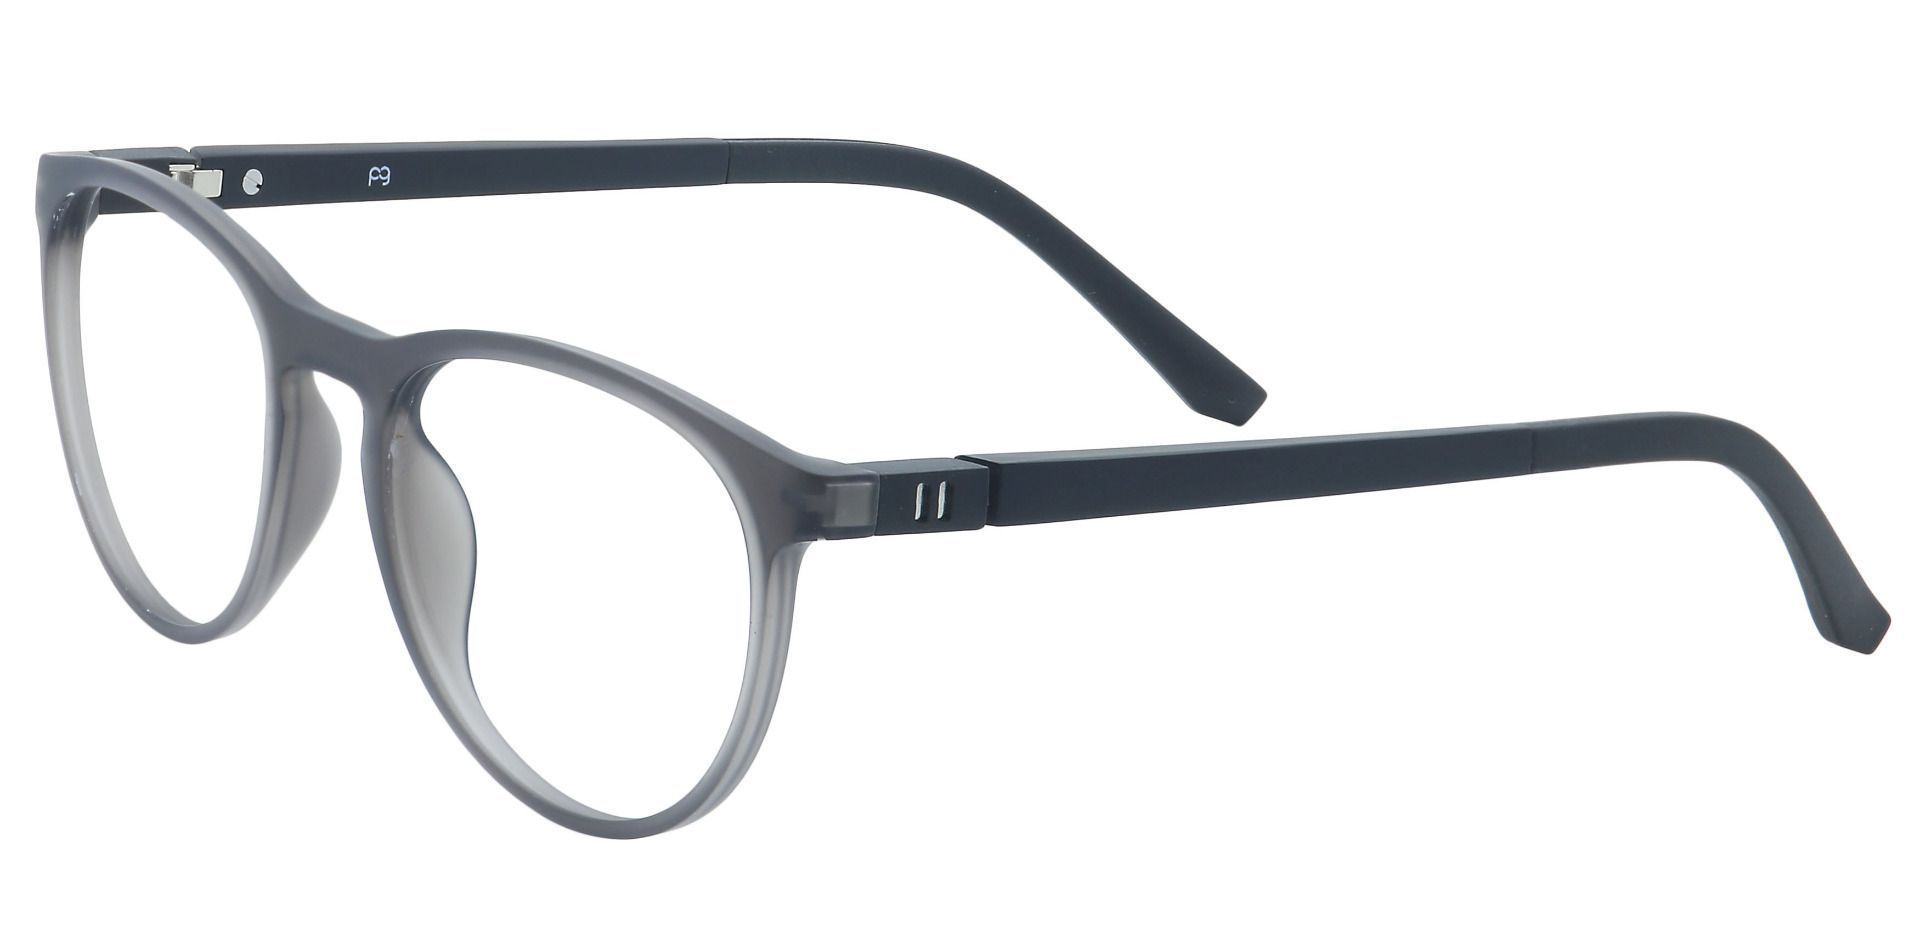 Heidi Round Reading Glasses - Matte Dark Grey